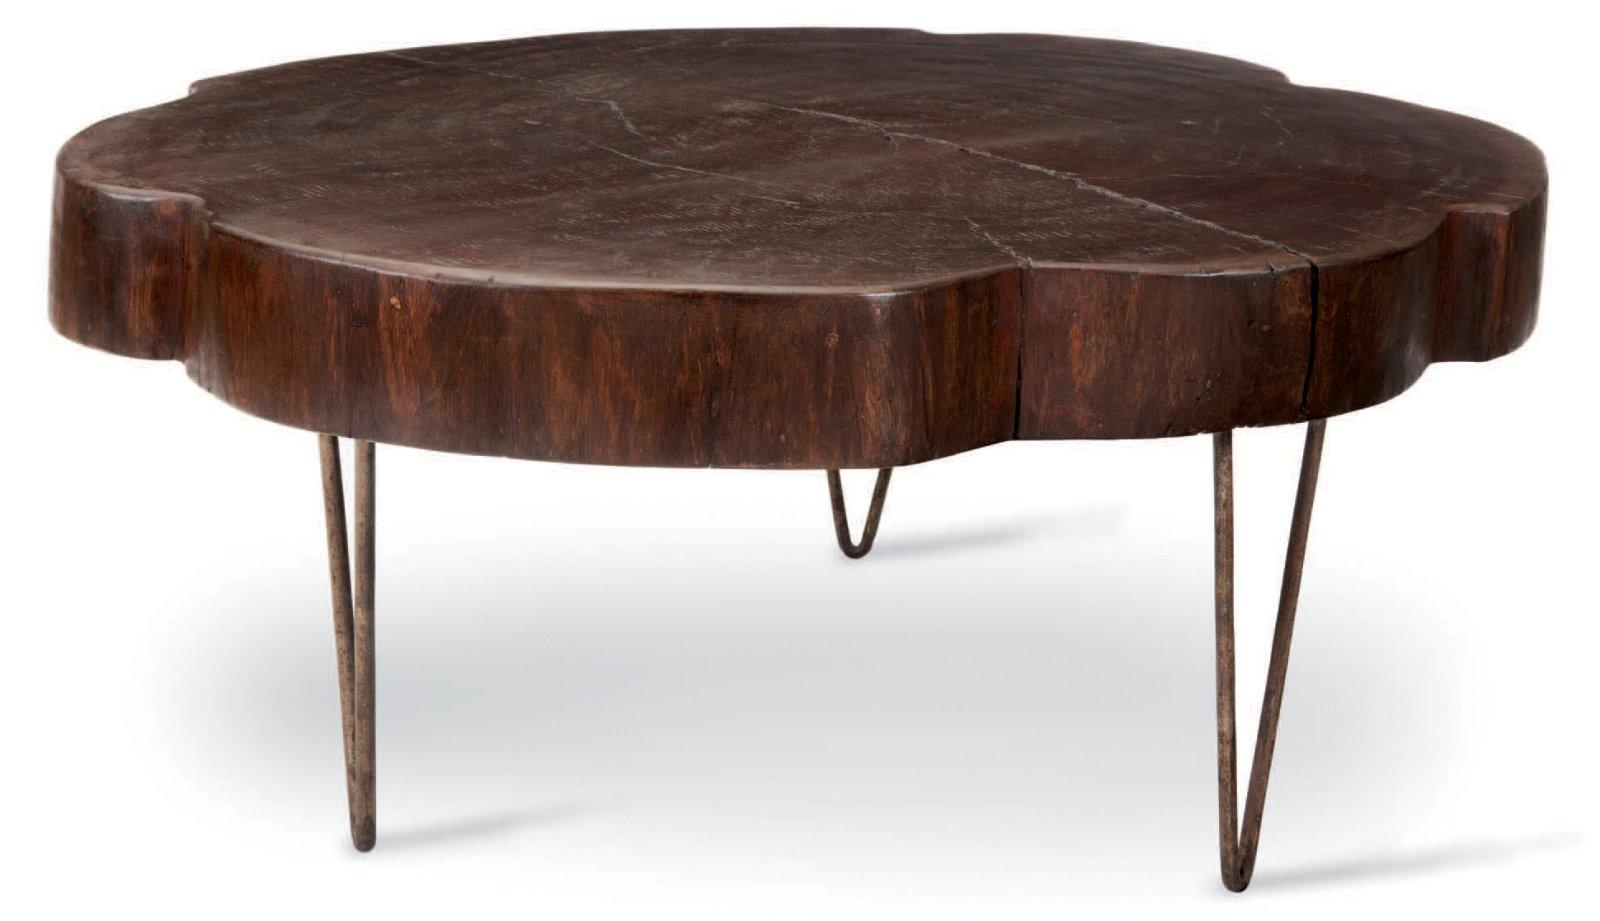 Table plateau tronc d arbre elegant table plateau tronc d for Table tronc d arbre